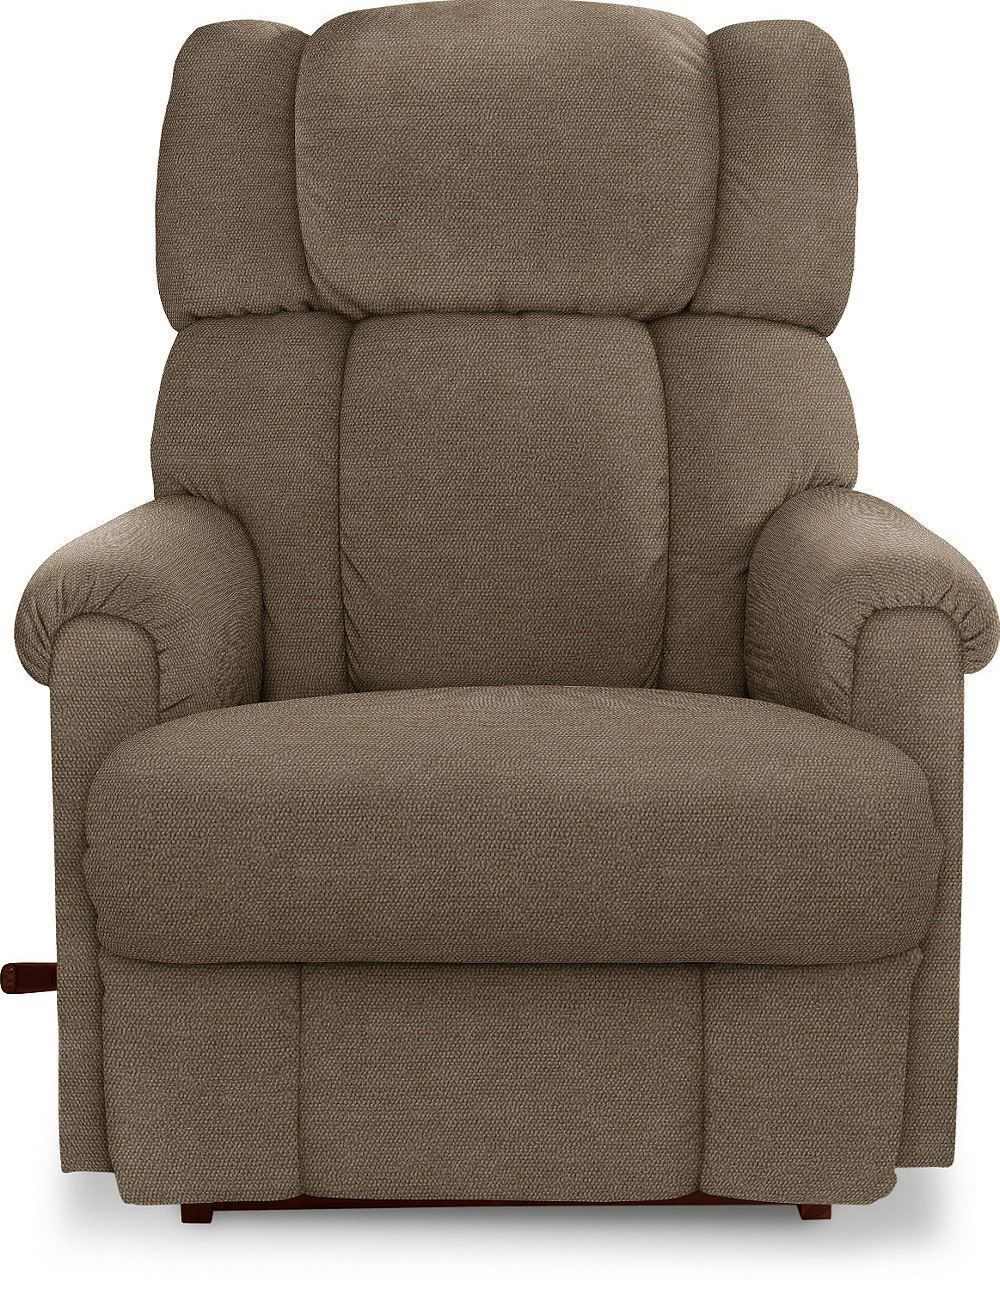 Picture of Pinnacle Granite Rocker Recliner with Airfoam Seat Cushion